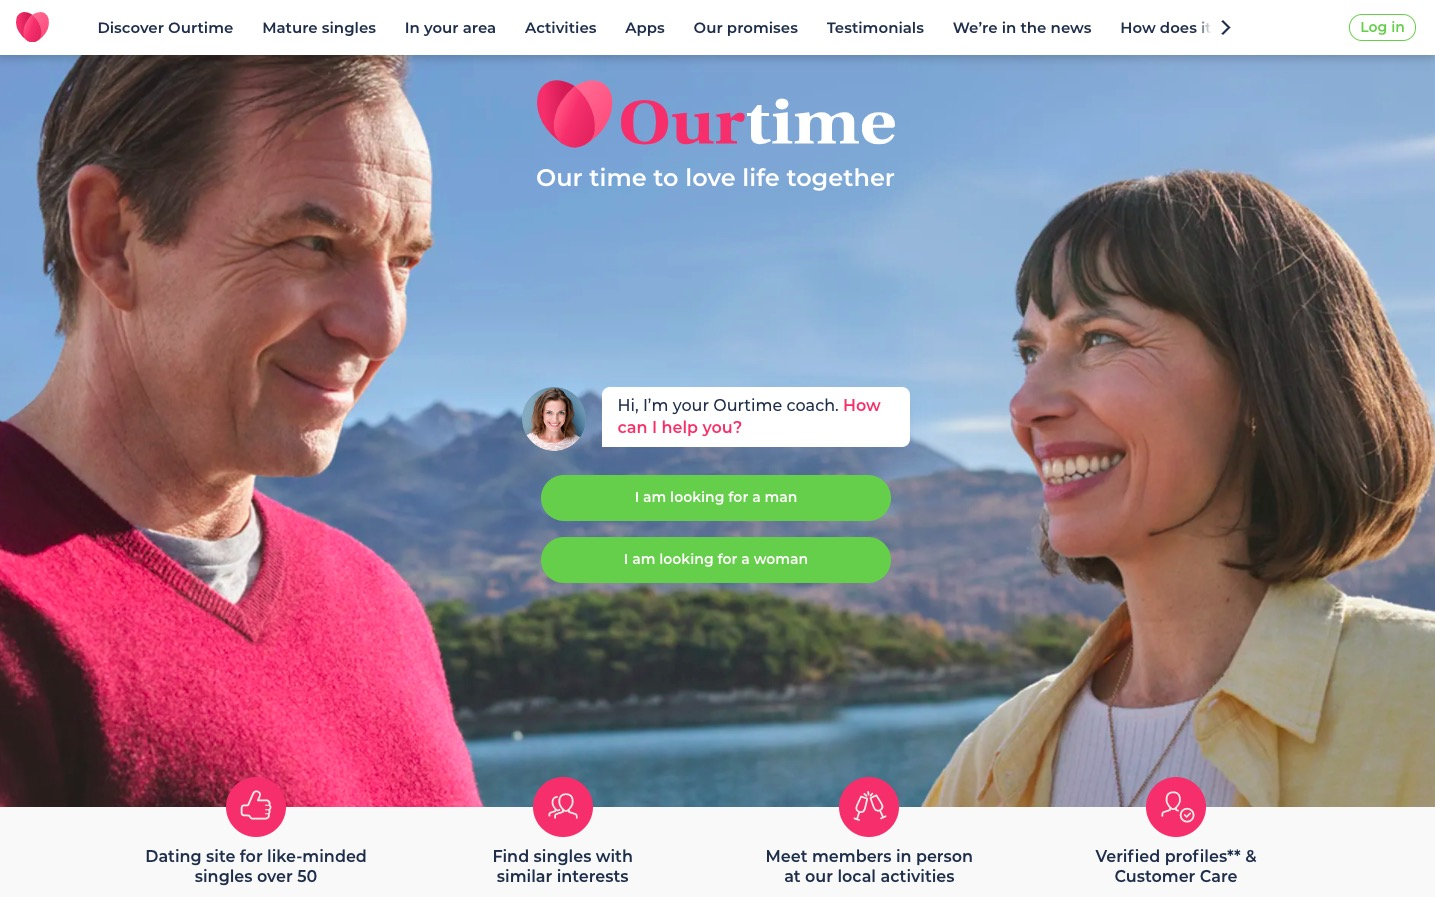 OurTime main page